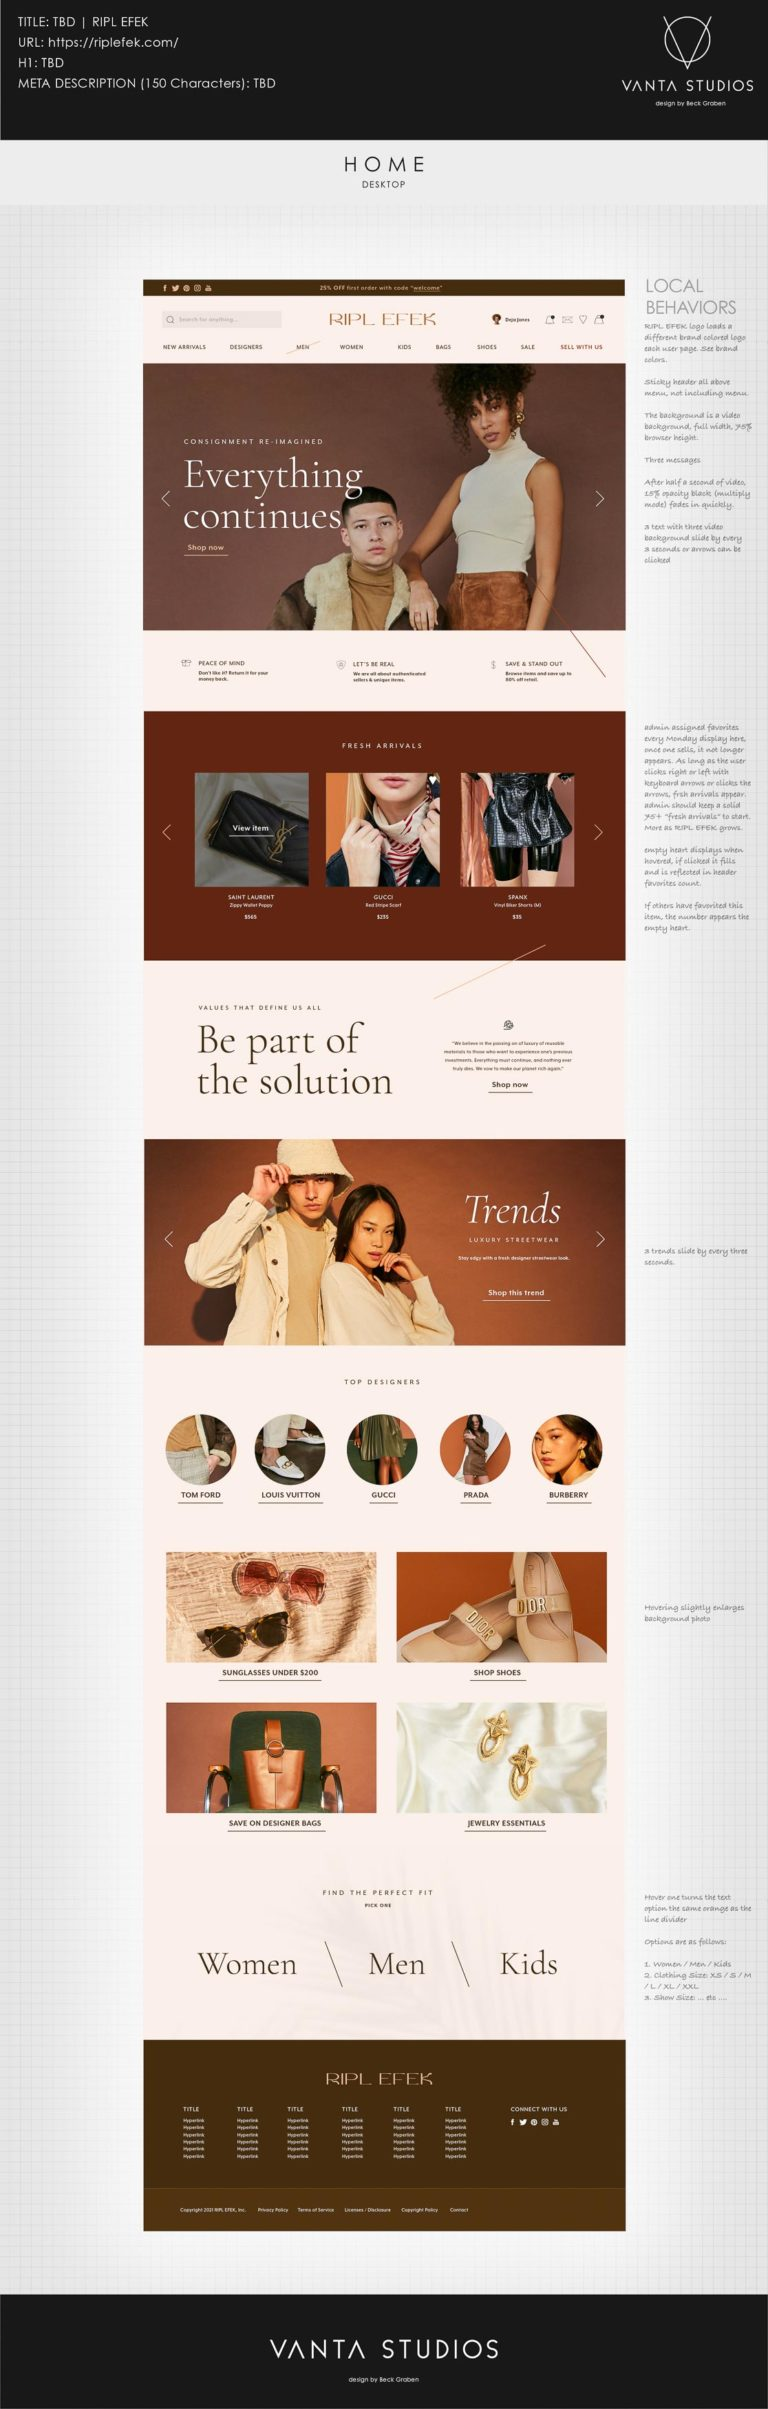 ecommerce-marketing-vanta-studios-2